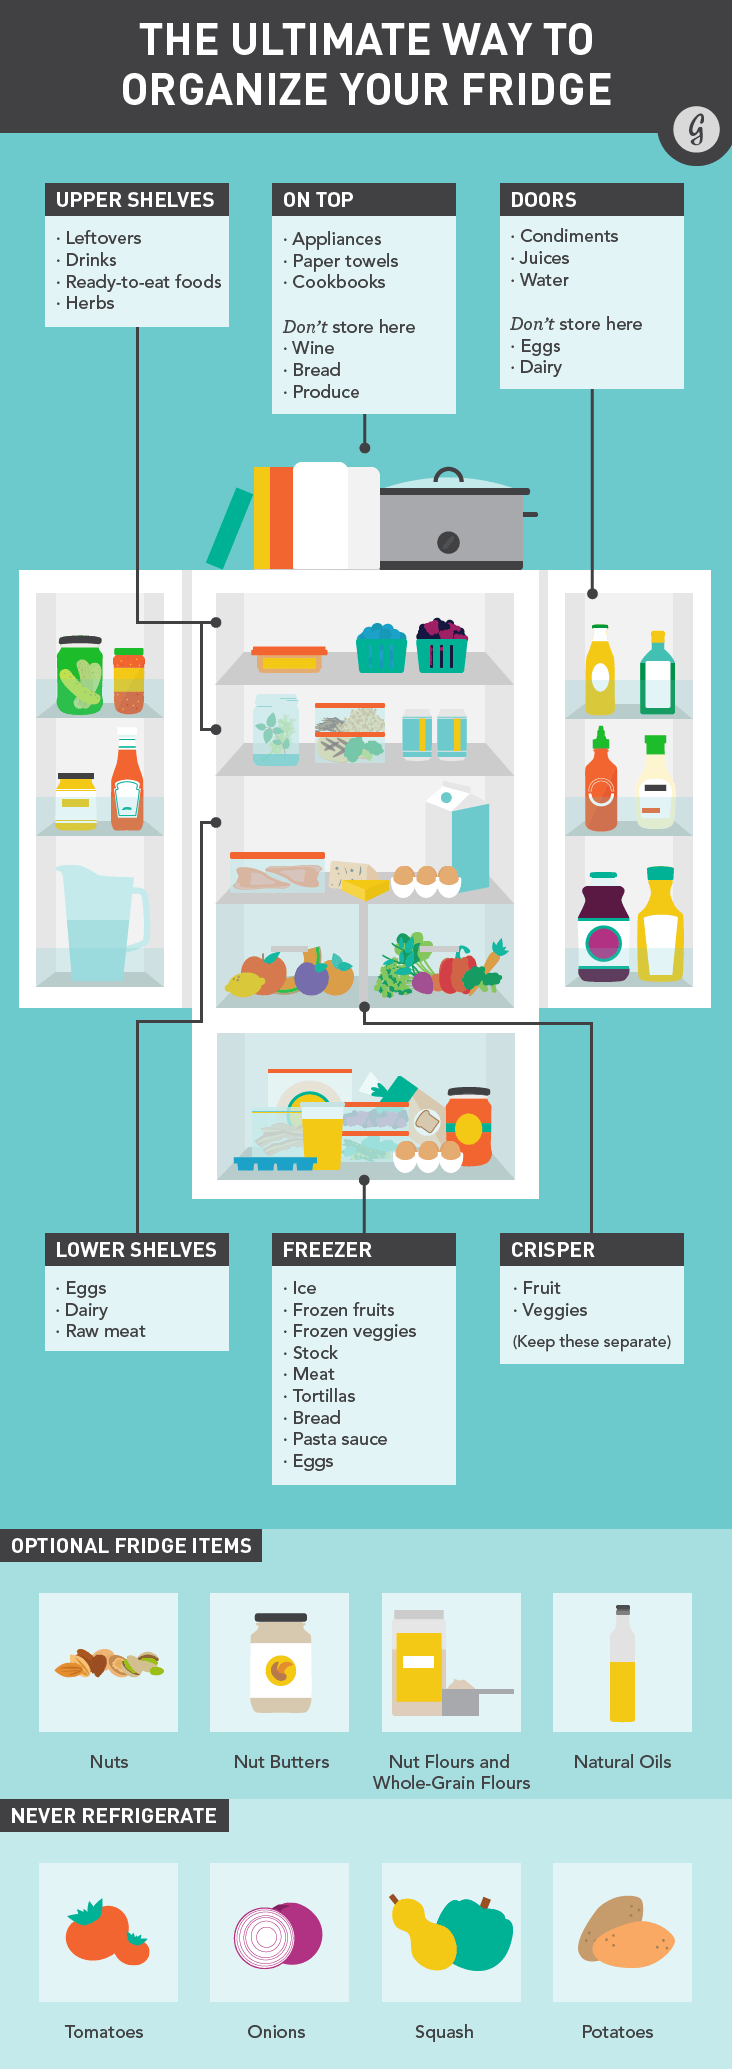 Infographic: How to Perfectly Organize Your Fridge to Cut The Energy Bills